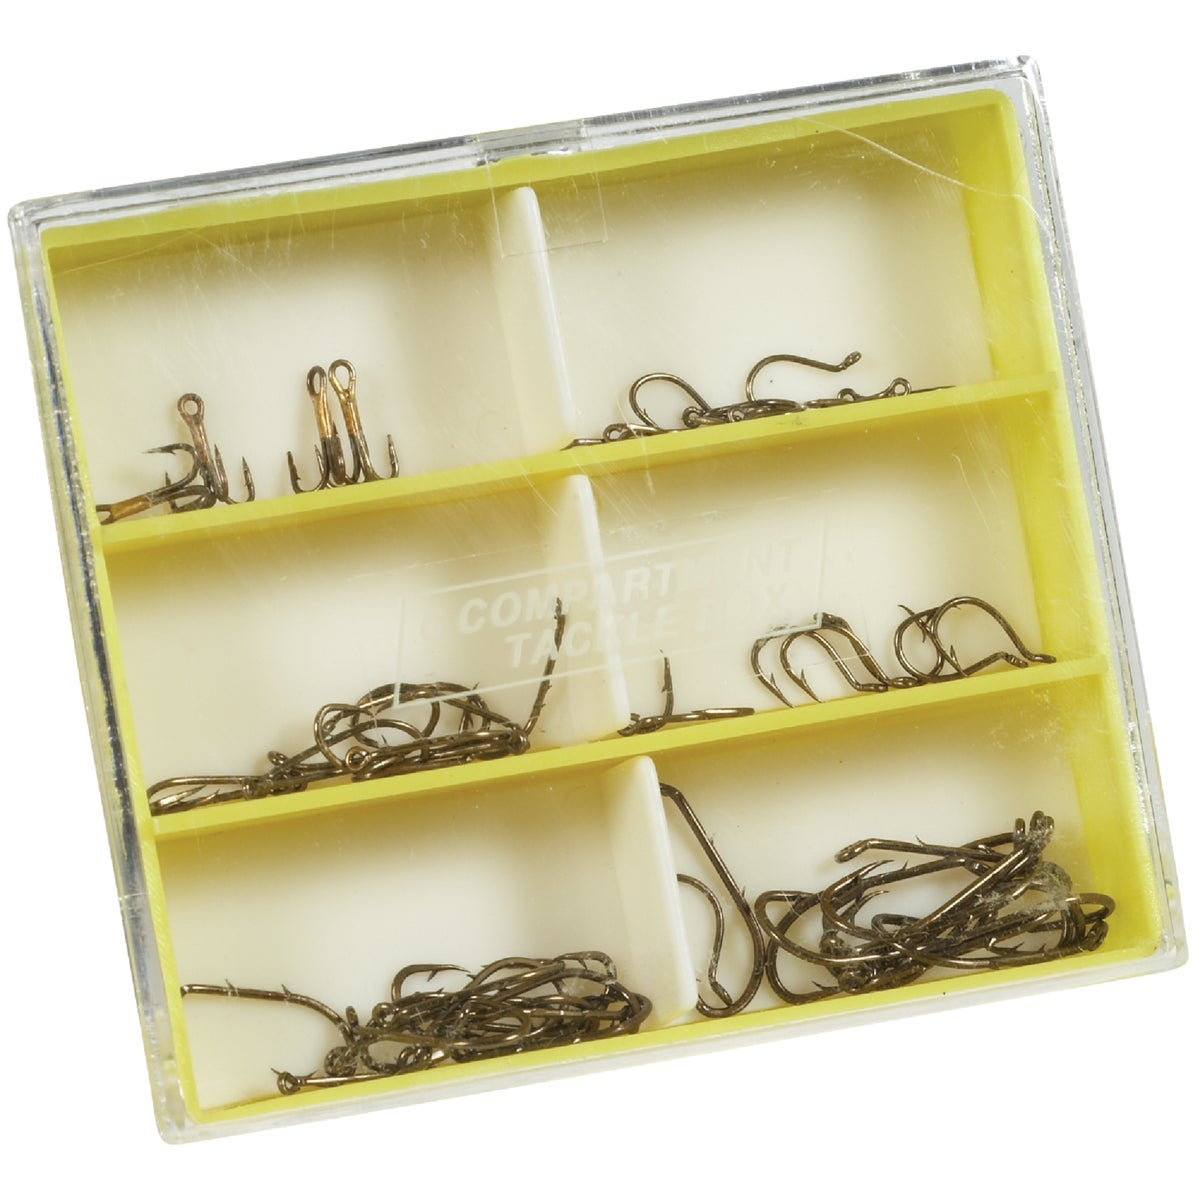 South Bend Sporting Goods 59PC ASTD TROUT HOOKS THA-1